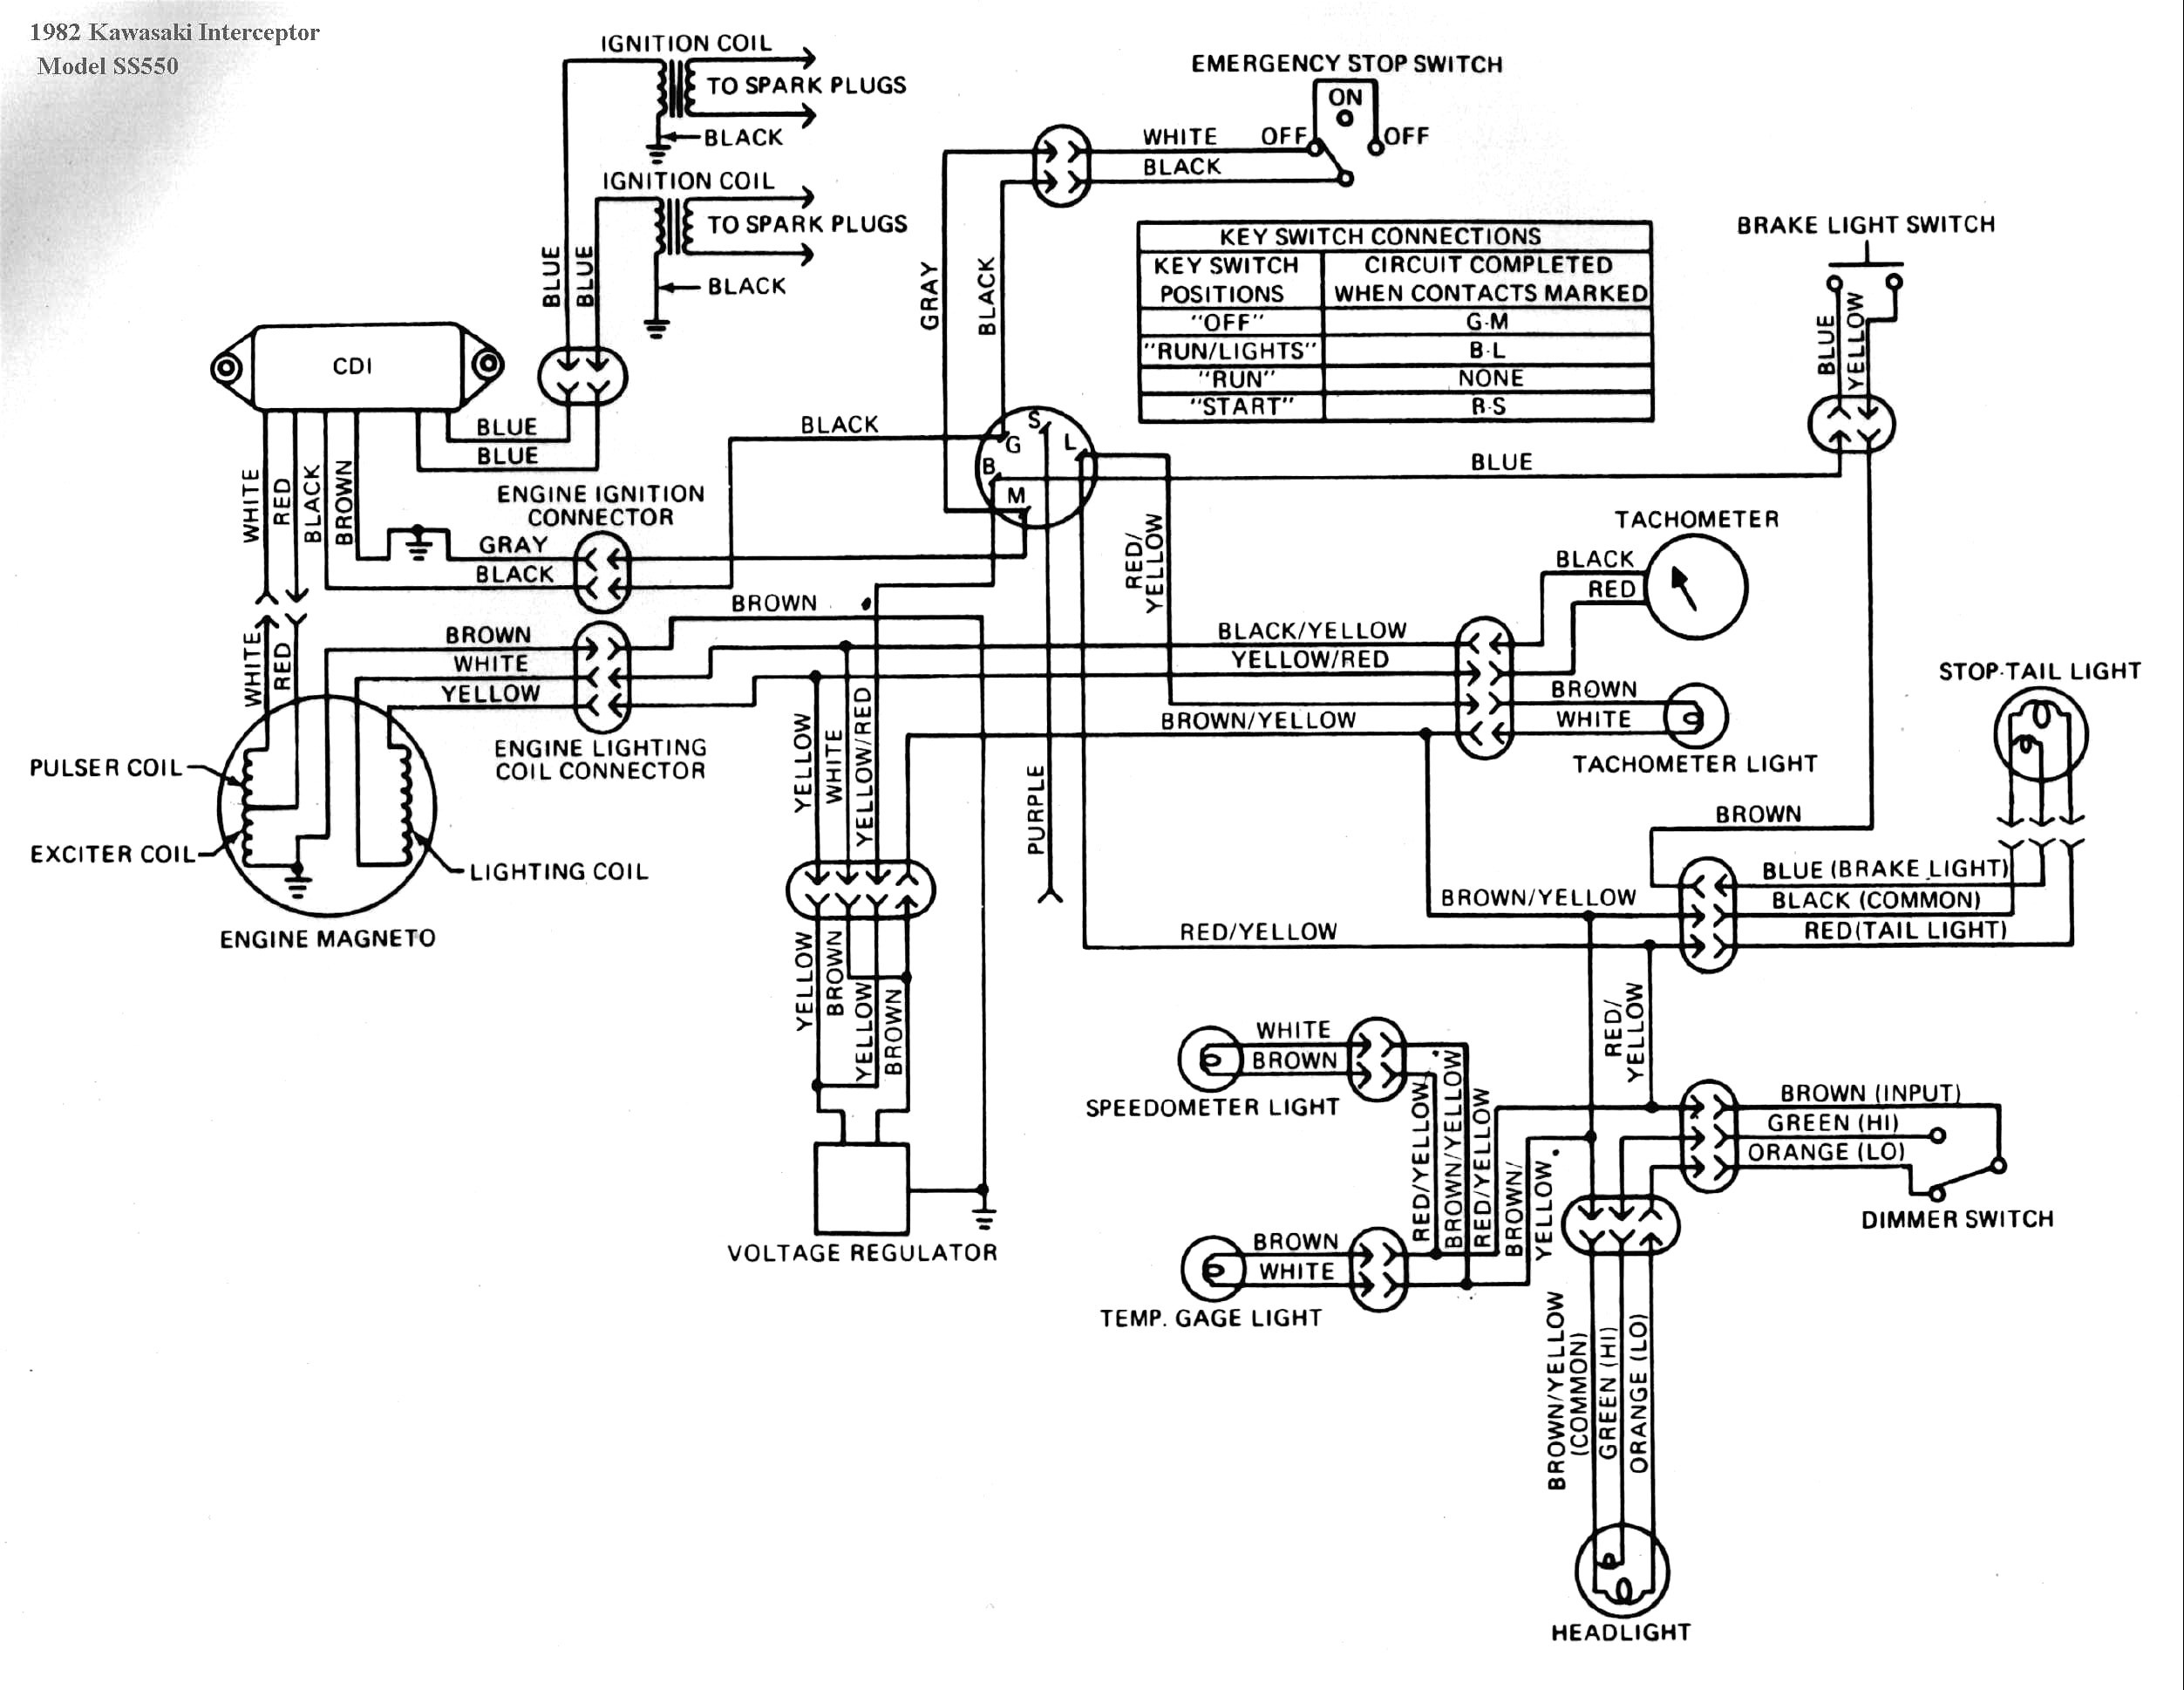 Prarie 400 Ignition Wiring Diagram